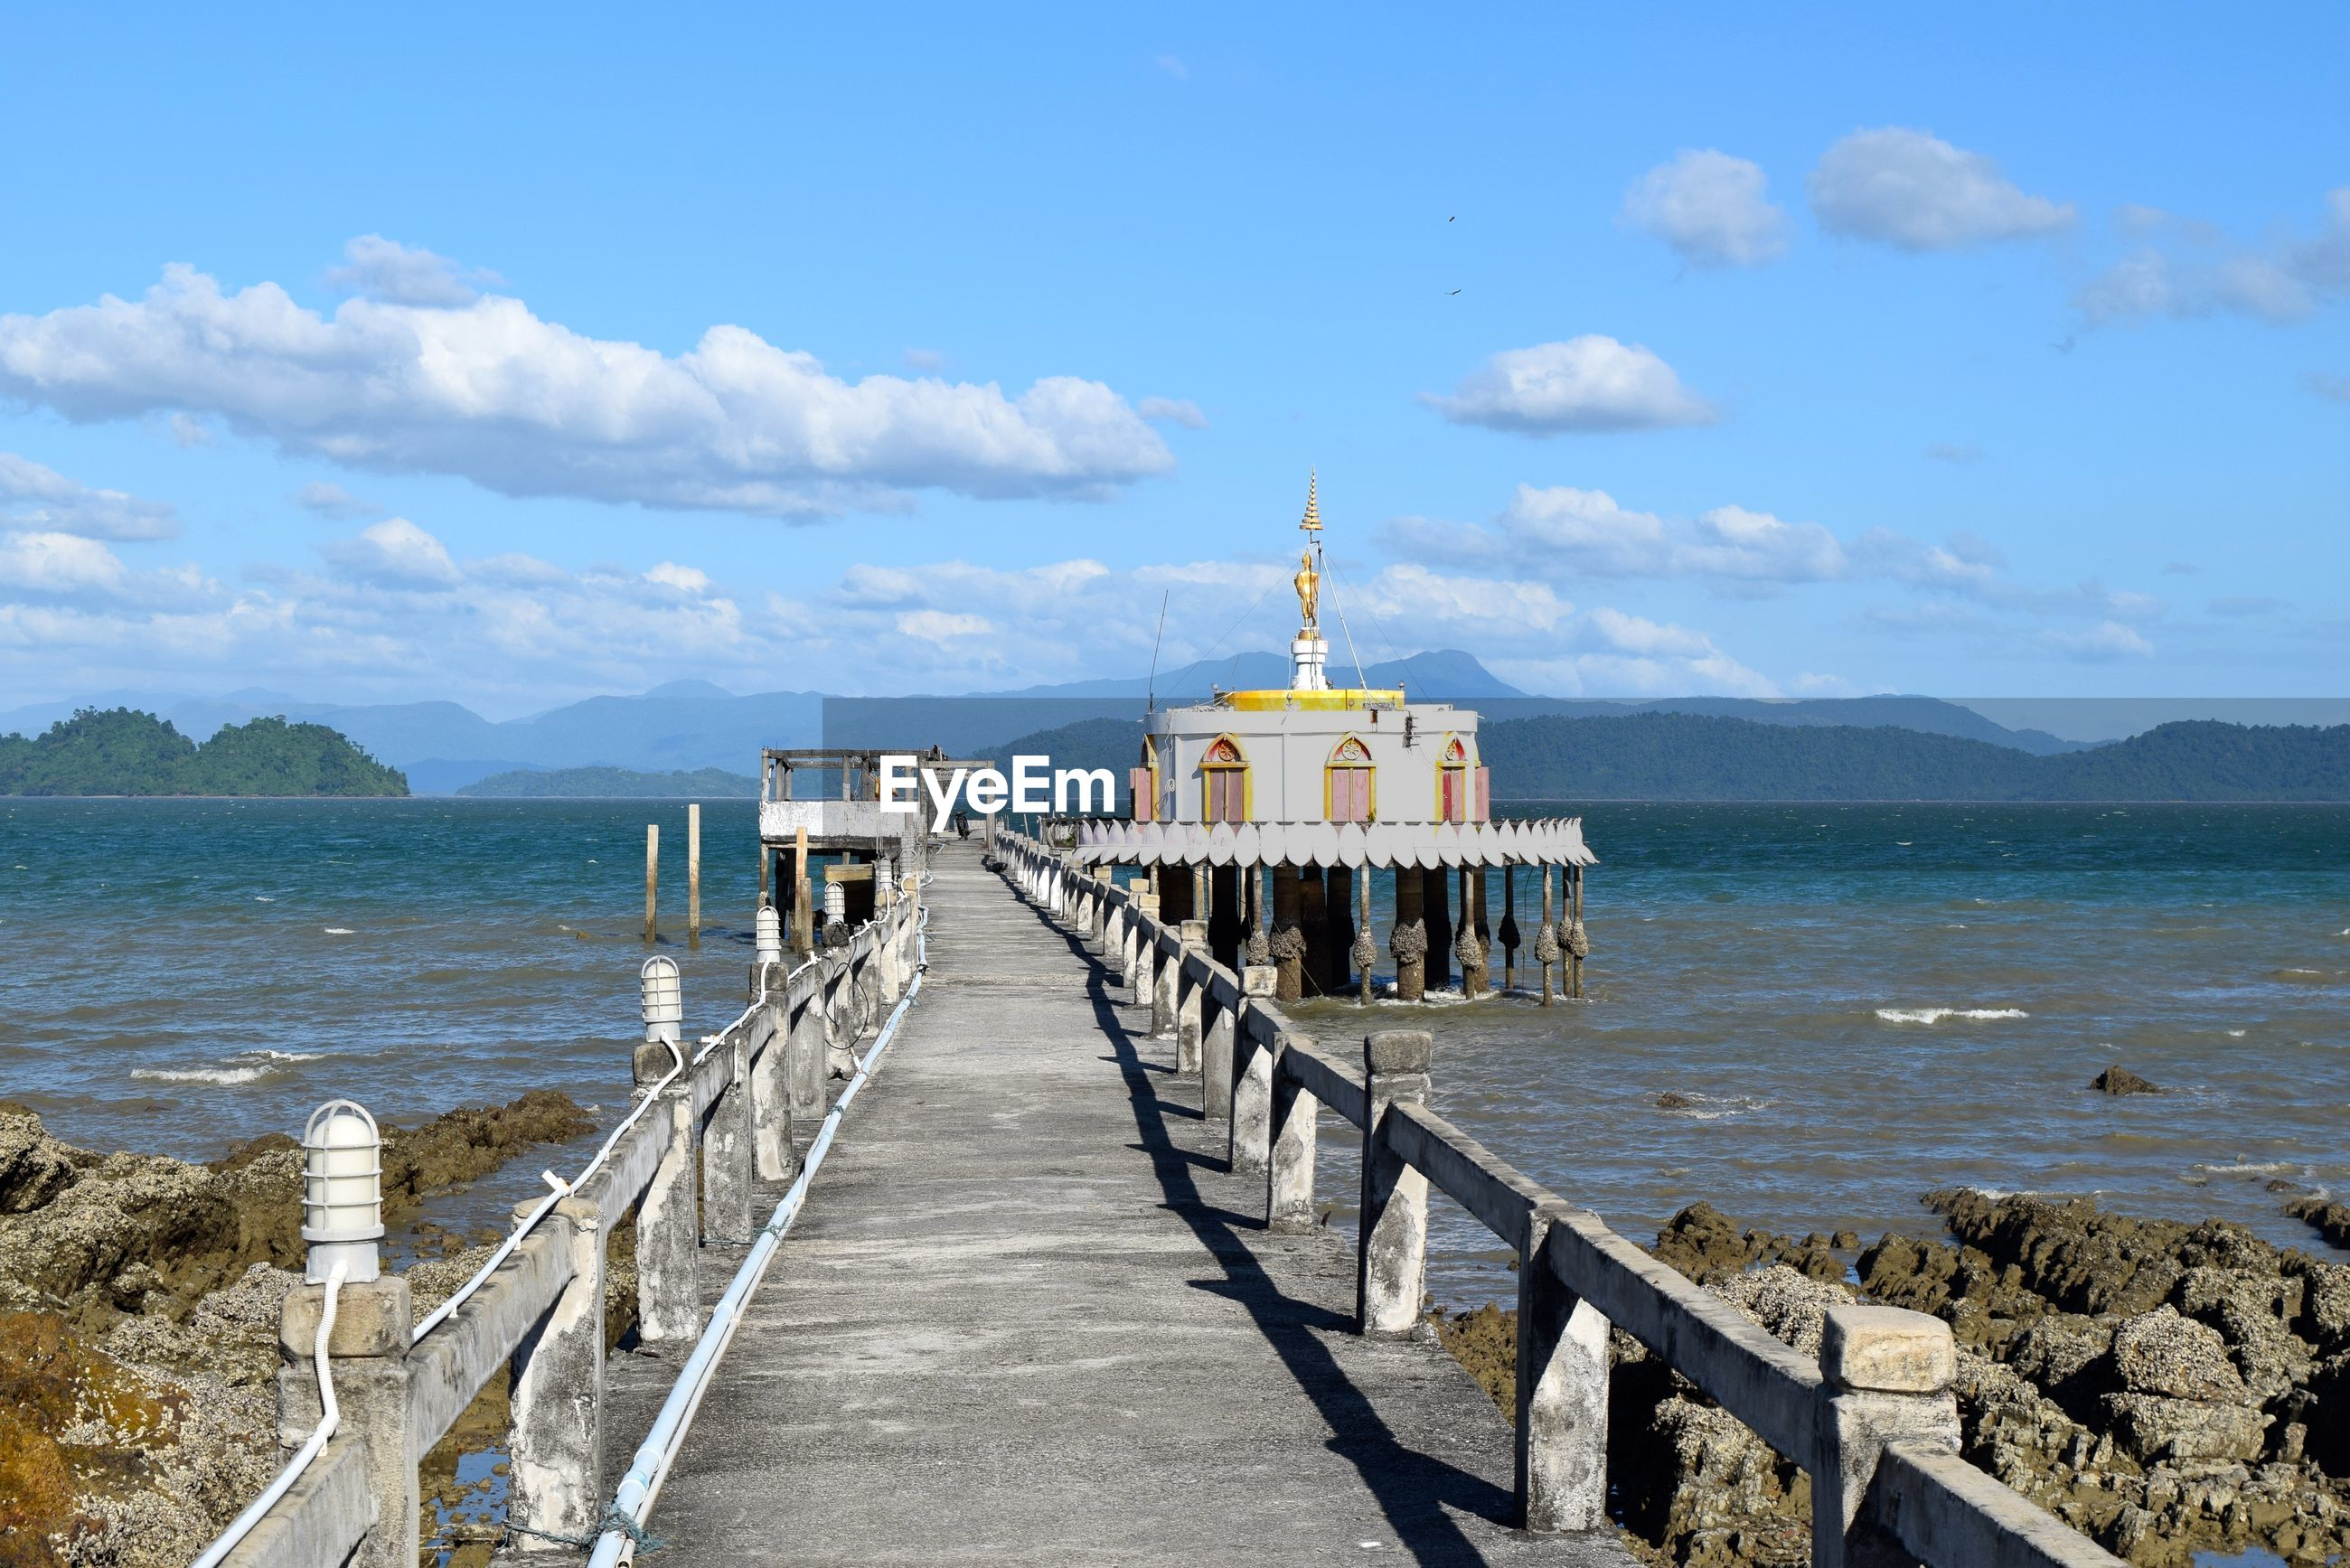 water, sea, the way forward, sky, built structure, architecture, pier, tranquil scene, tranquility, cloud - sky, leading, railing, mountain, scenics, building exterior, empty, cloud, blue, diminishing perspective, nature